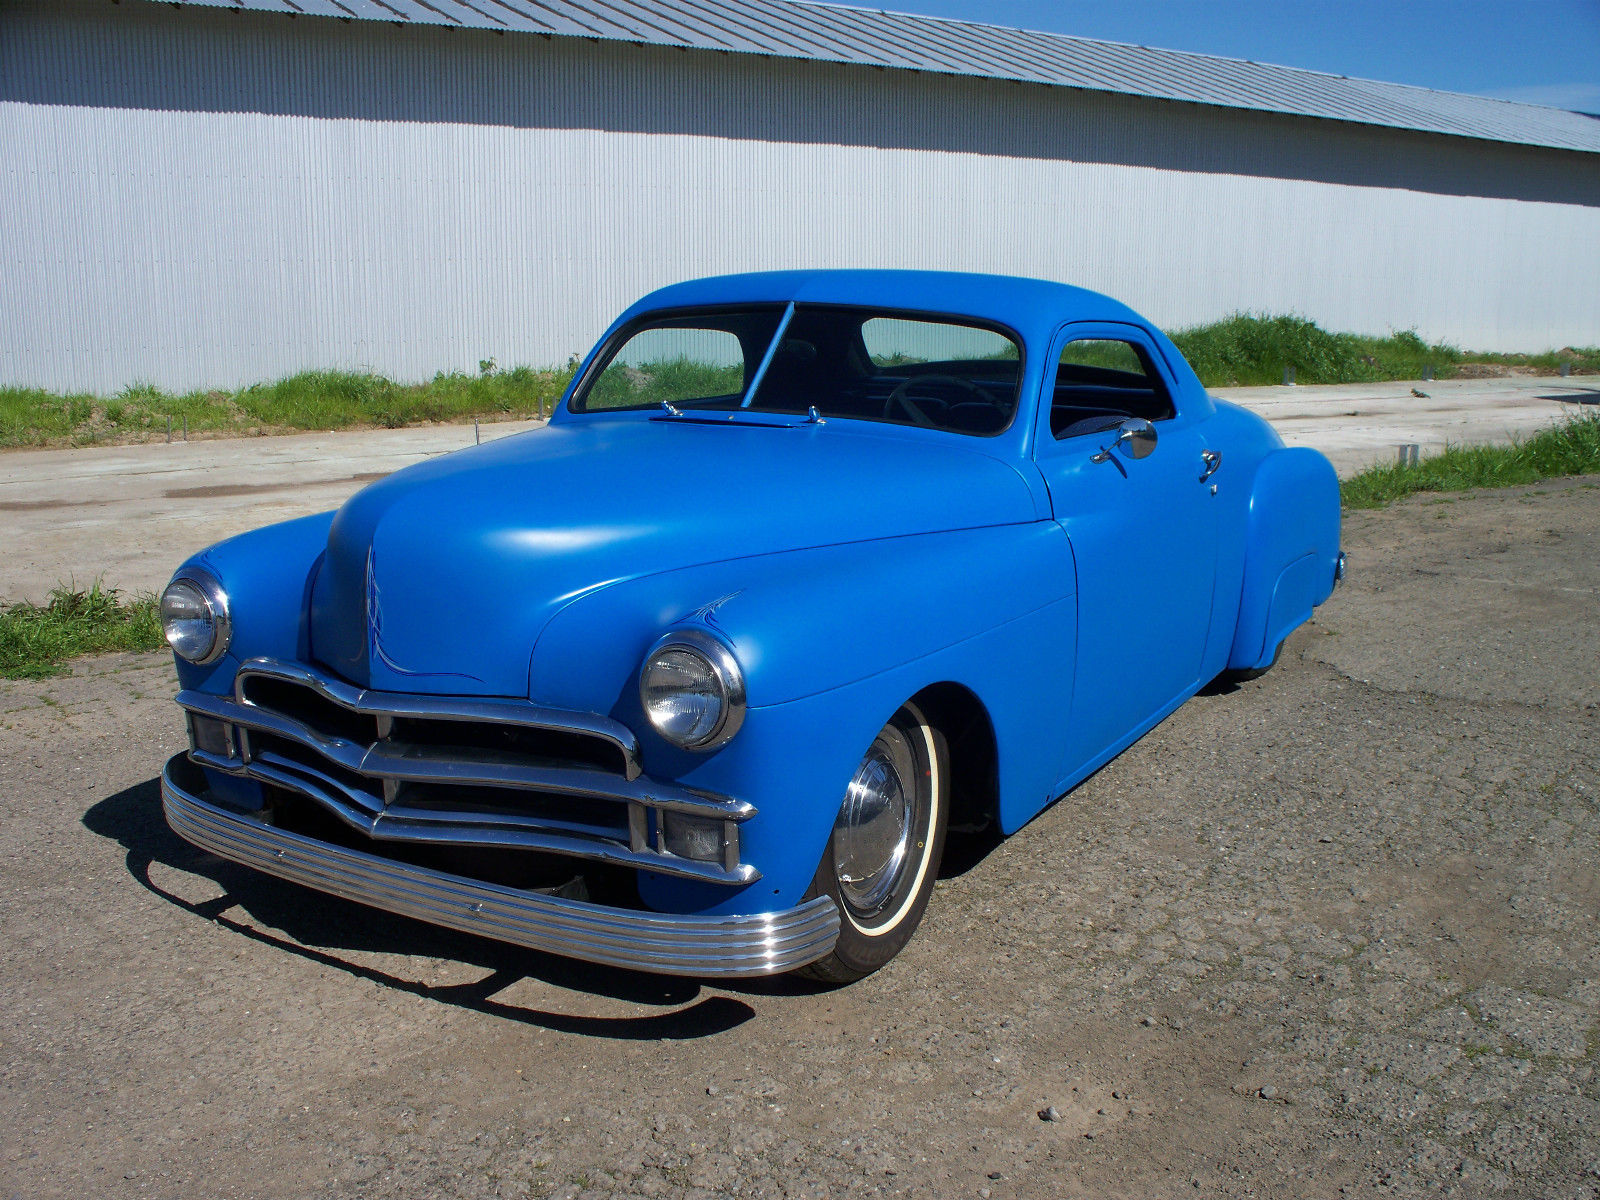 Wiring Ford Old Cars 1950 Plymouth Business Coupe Chopped Hot Rod Custom For Sale